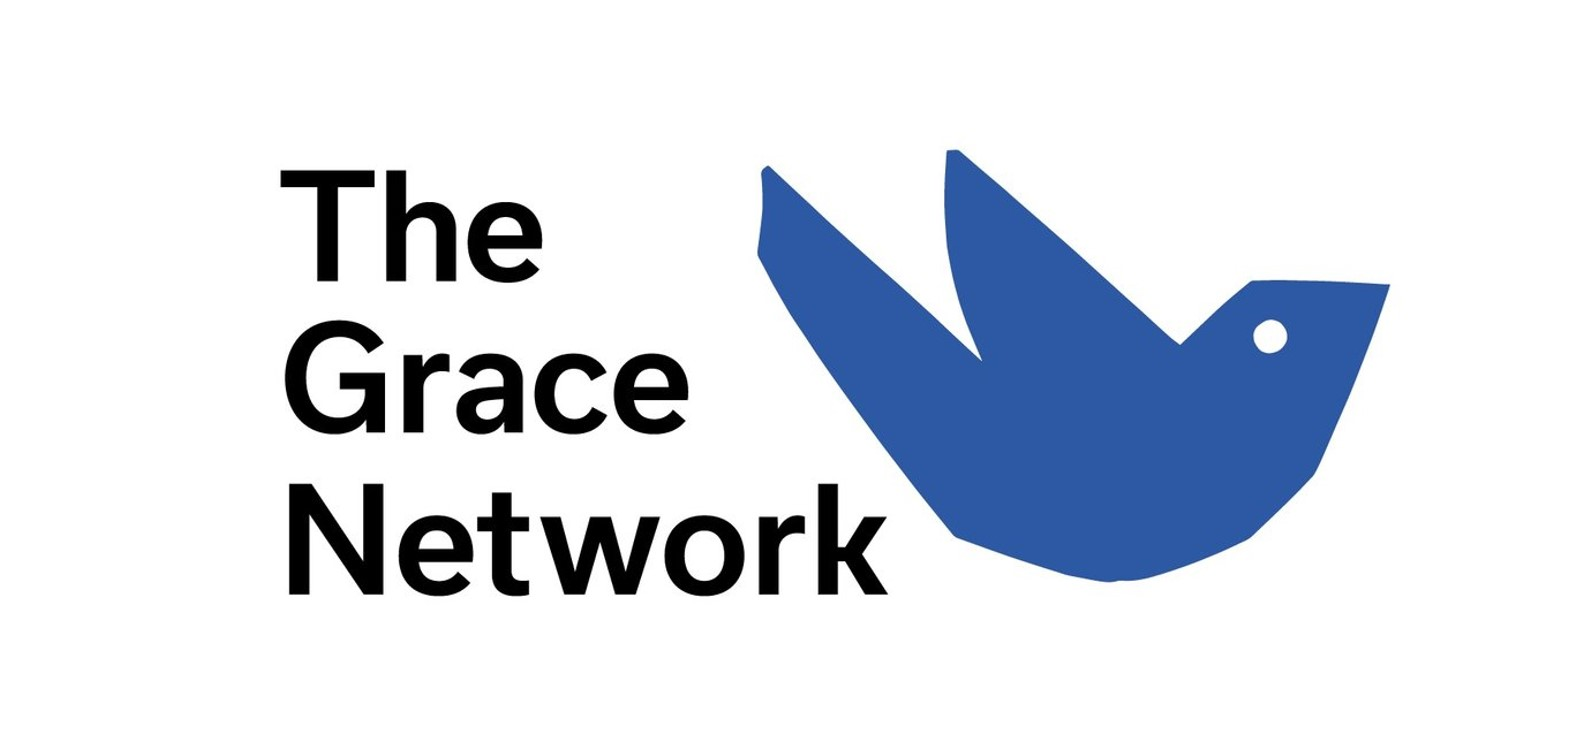 The Grace Network